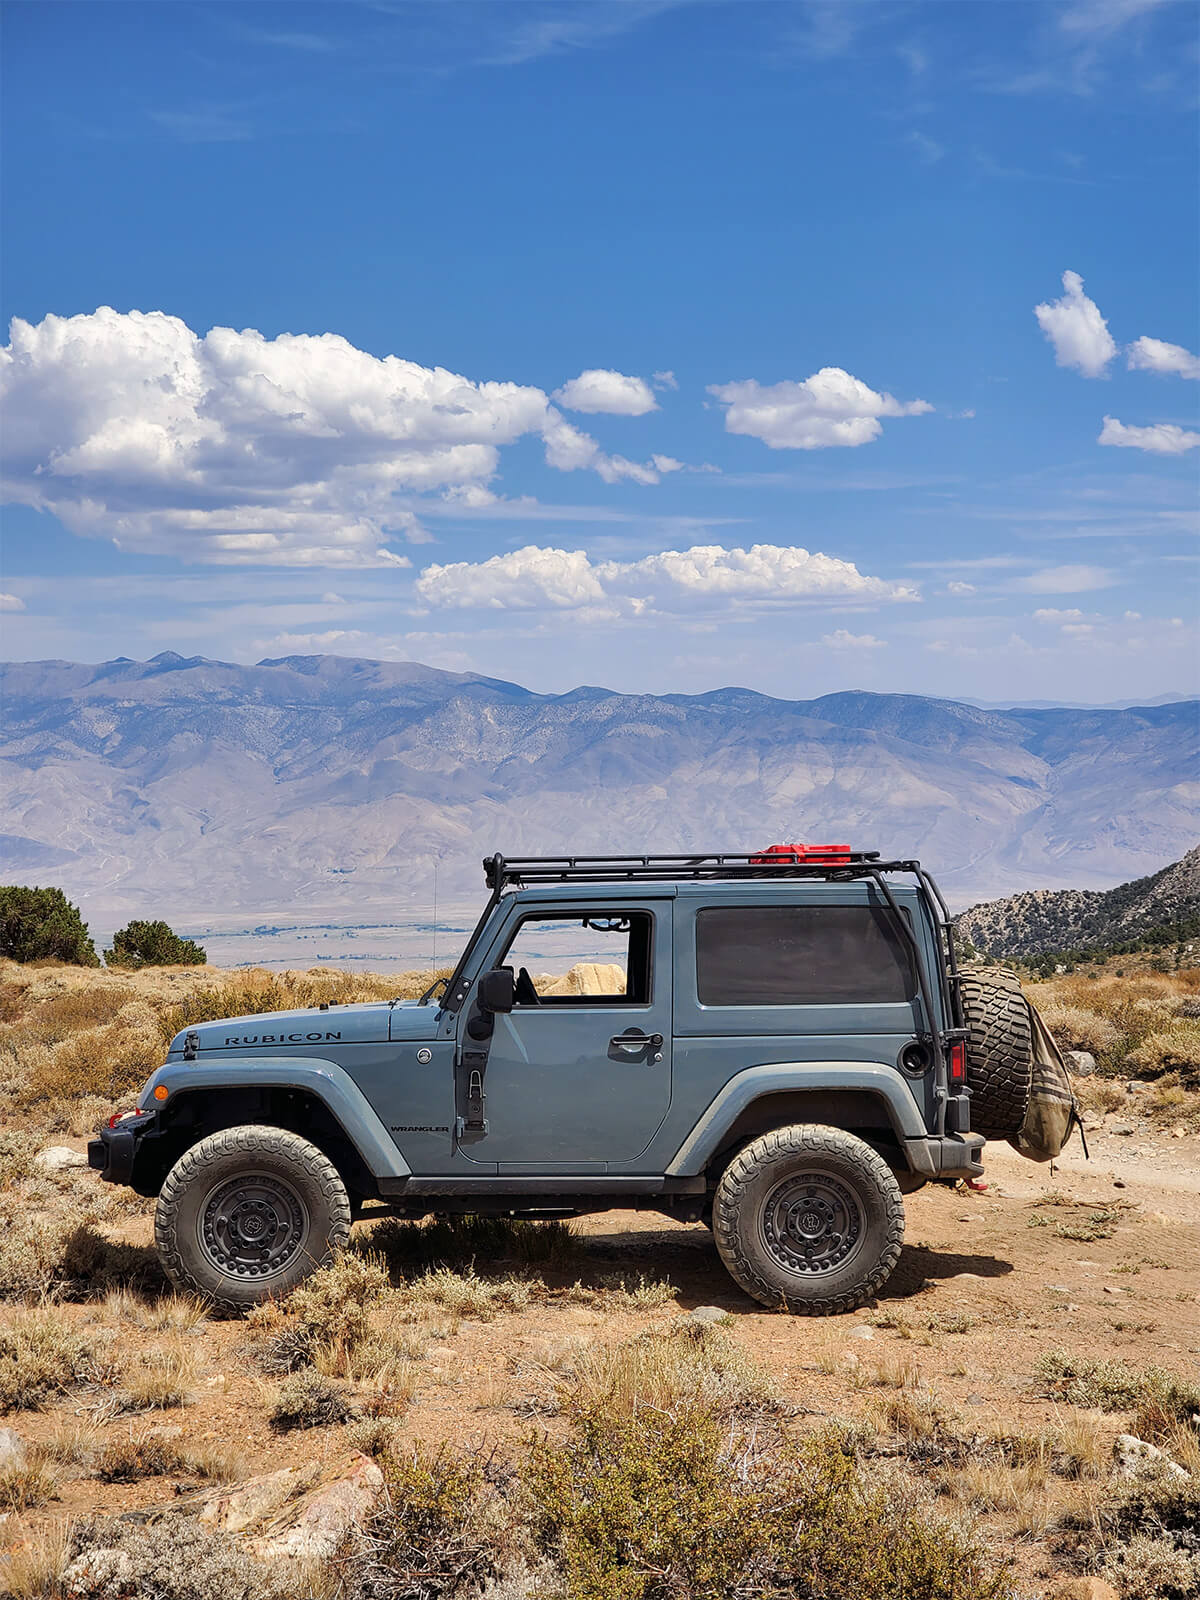 Jeep Wrangler Rubicon JK with a colormatched hardtop